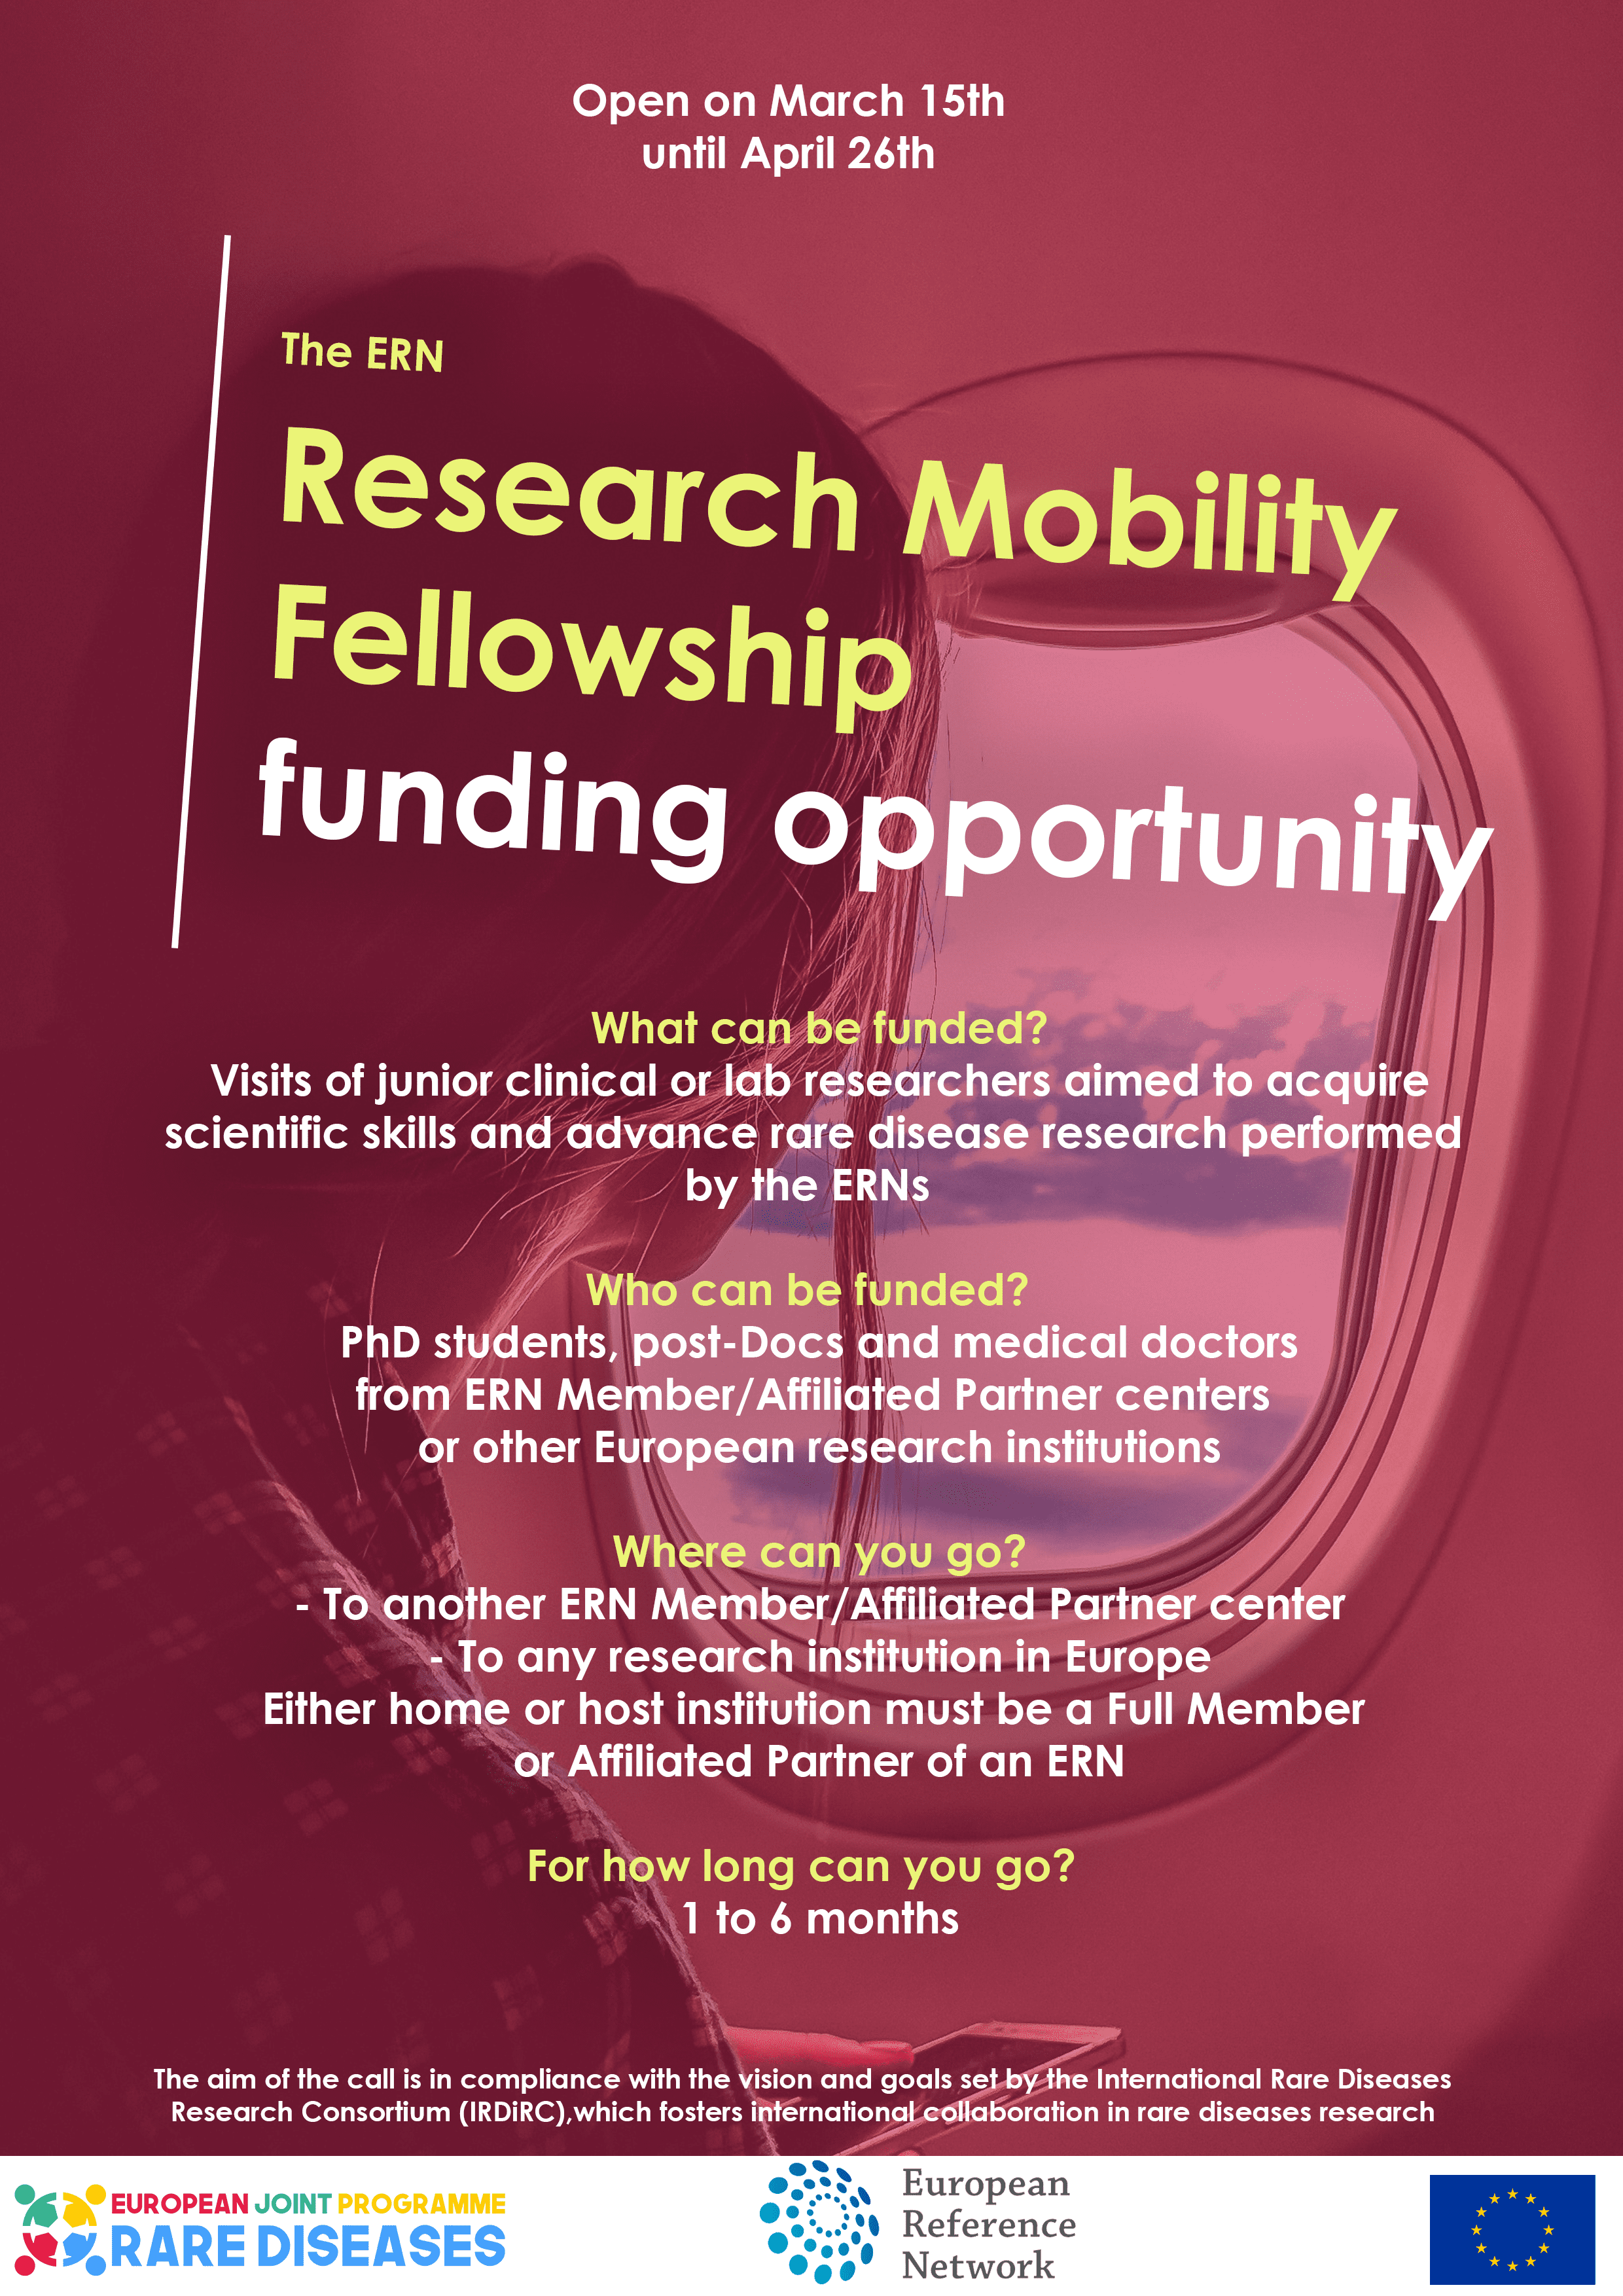 The Research Mobility Fellowships is open from March 15th to April 26th